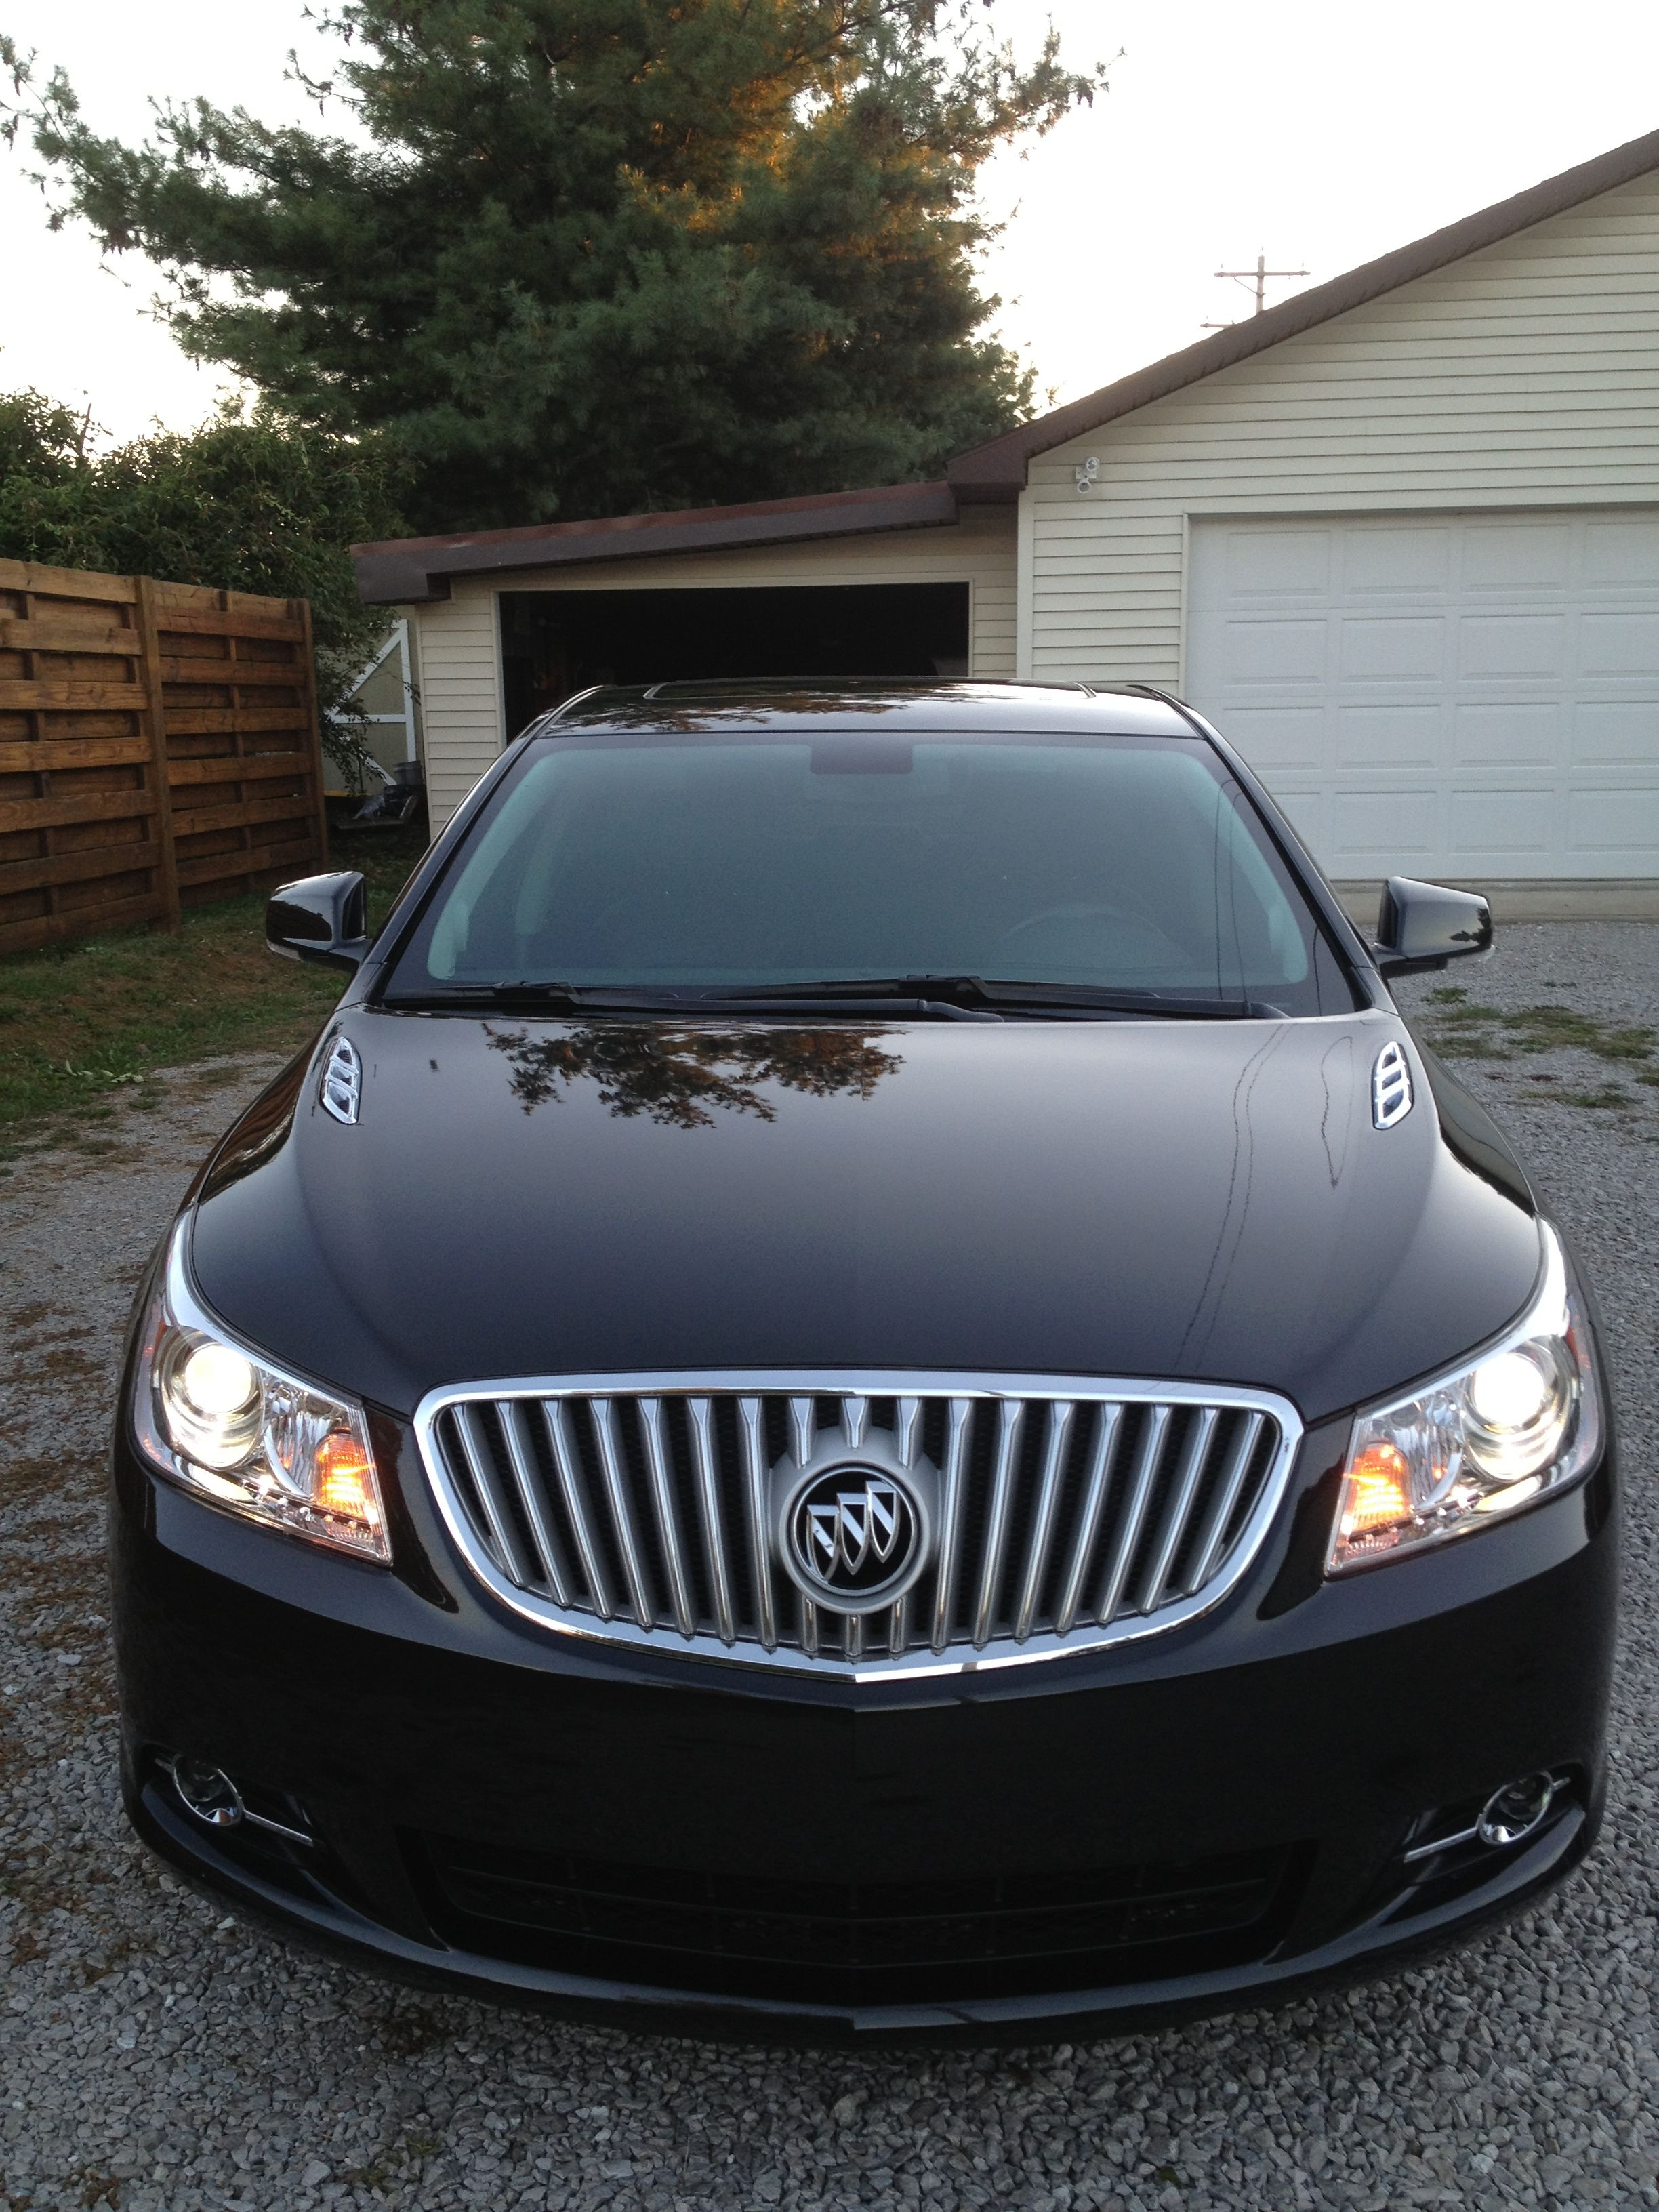 Pin By Linda Whalen On 2011 Buick Lacrosse Cxs Buick Lacrosse Best Luxury Cars 2011 Buick Lacrosse